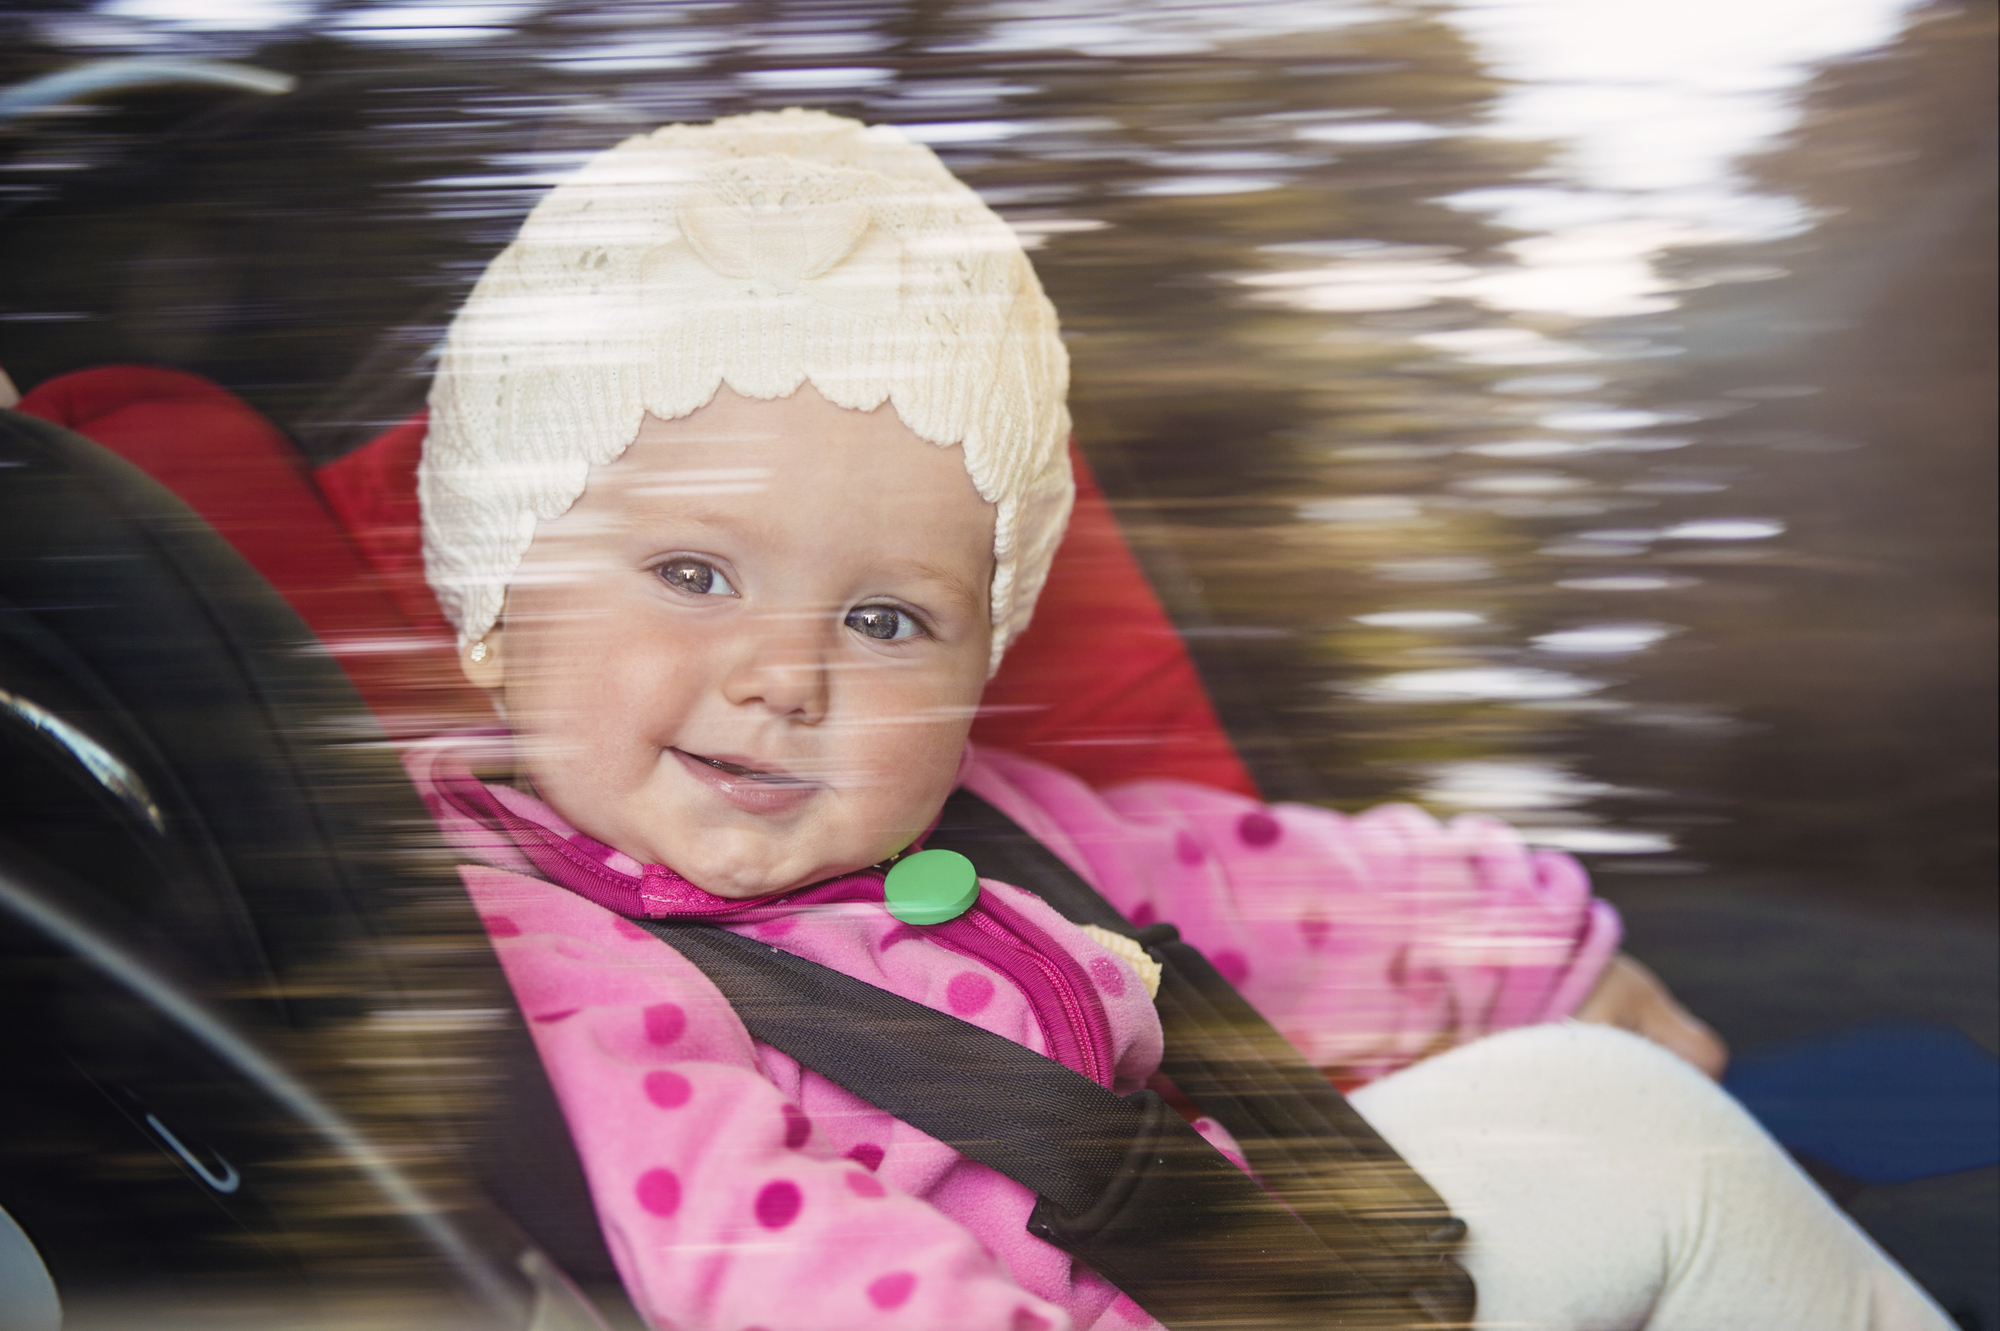 Baby Girl Smiling, Sitting in Car Seat